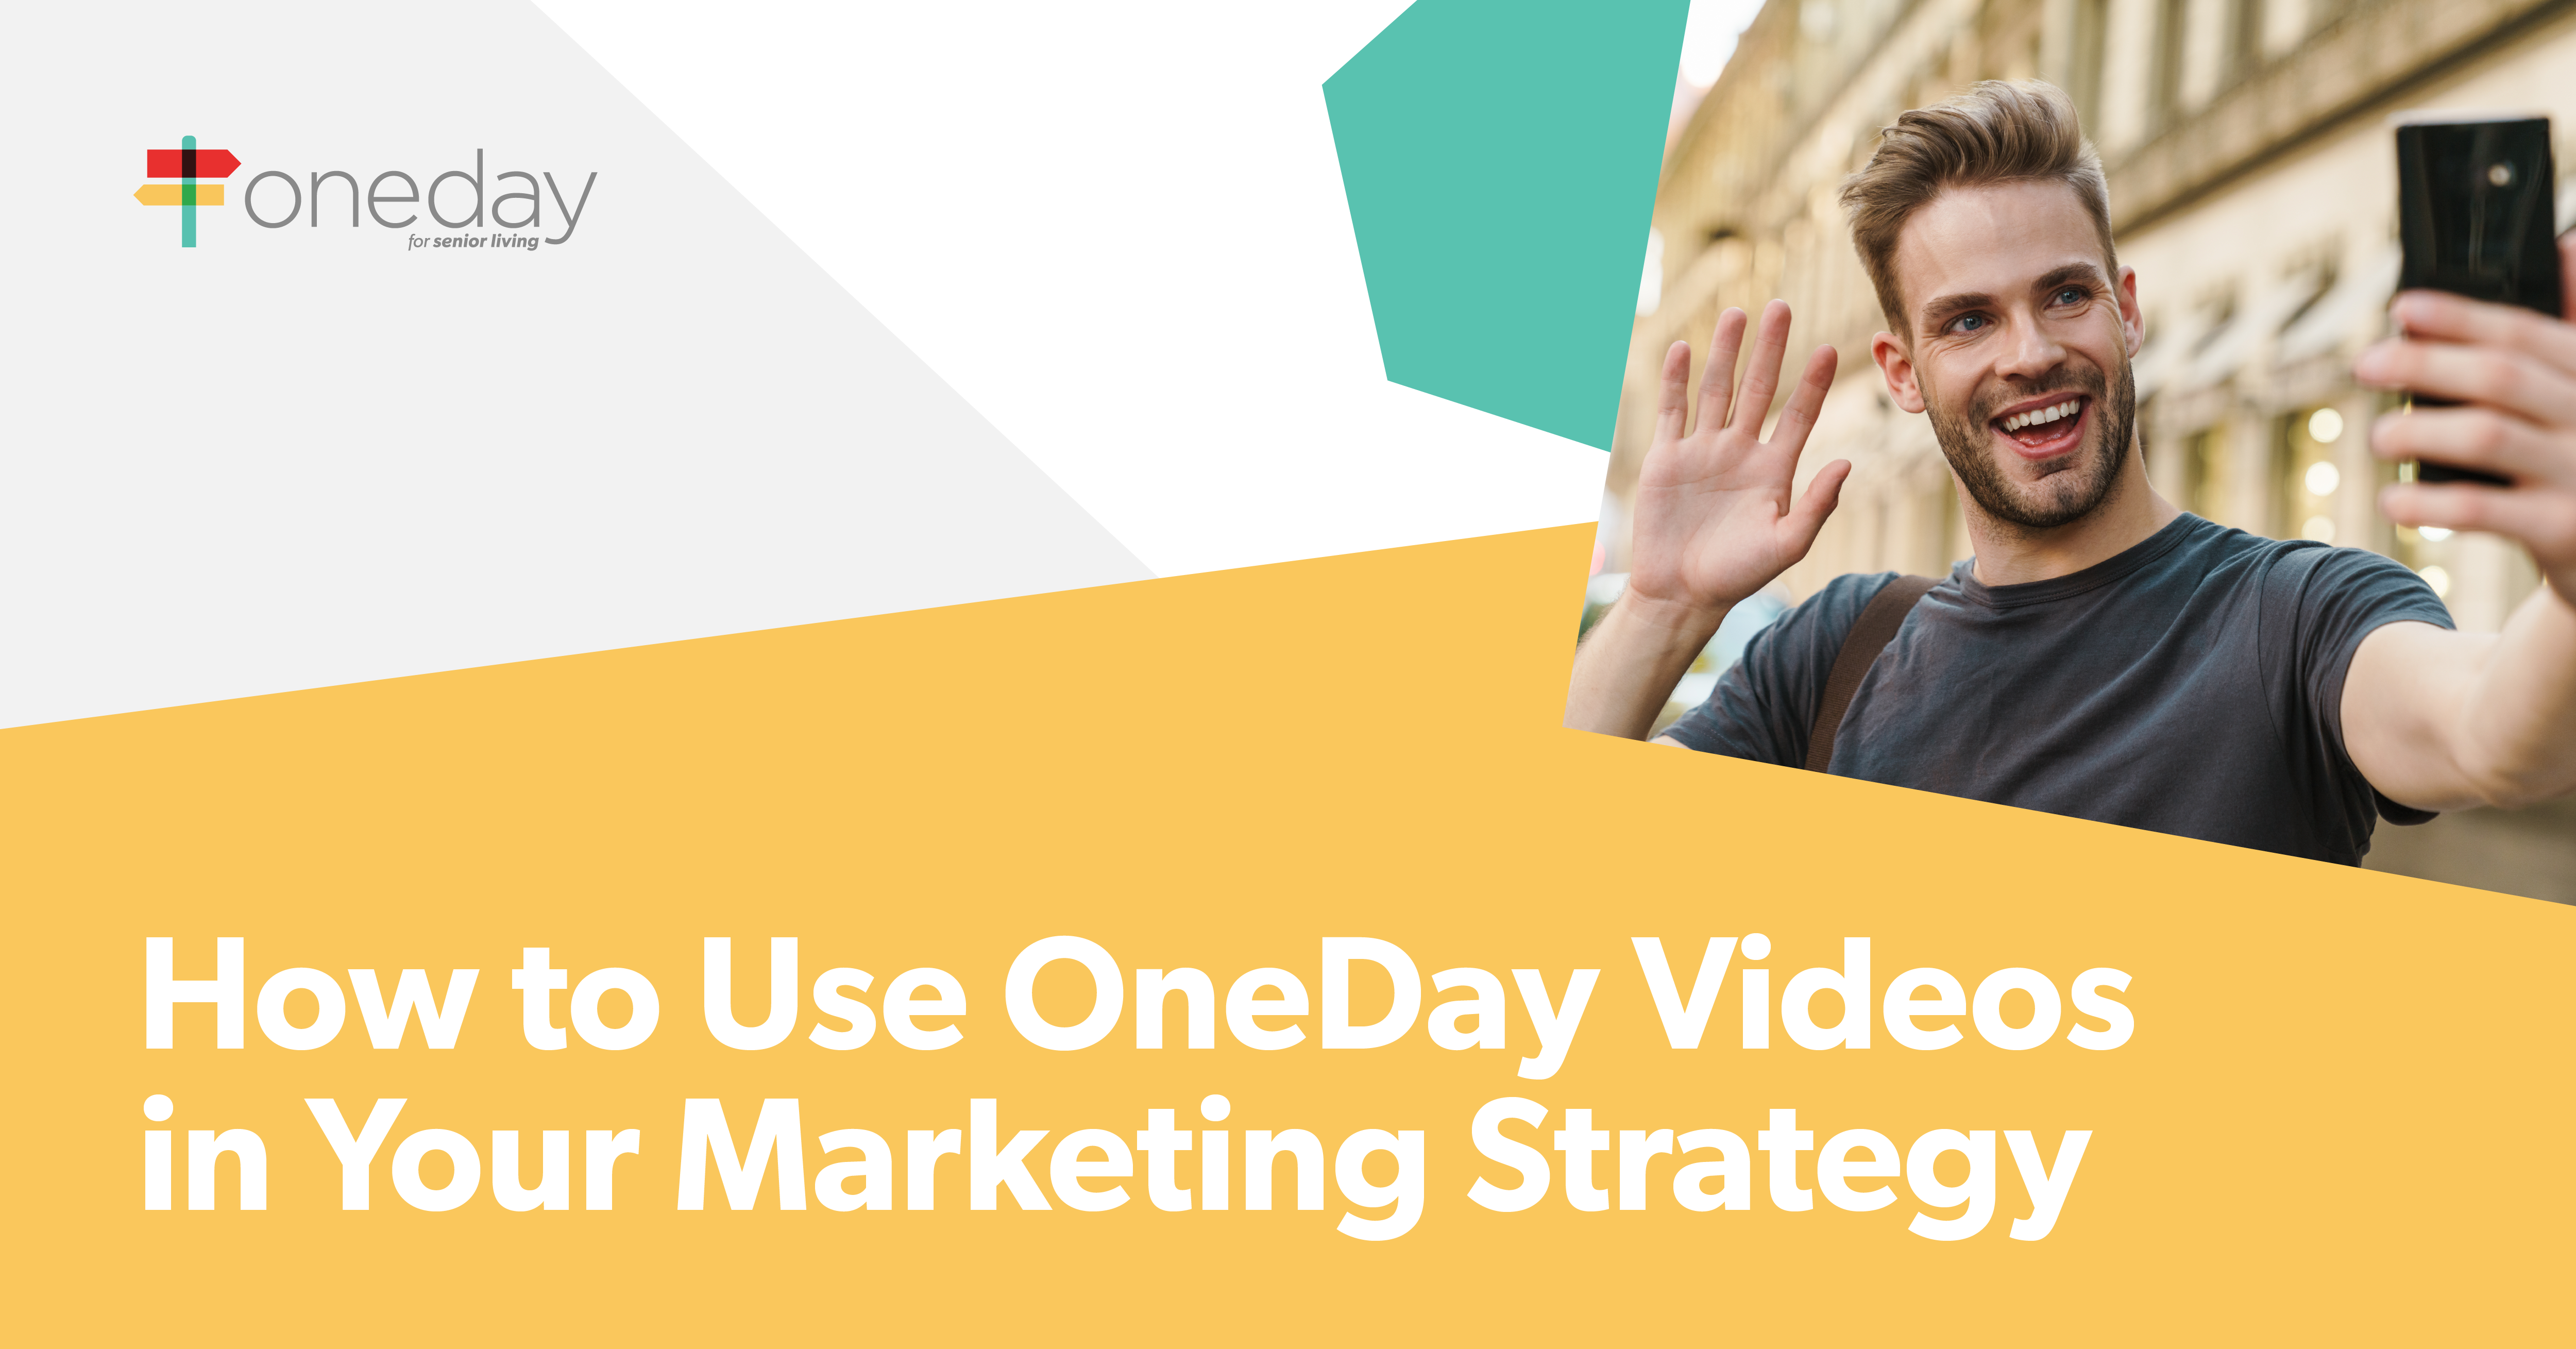 Tips from OneDay's specialists on the different ways senior living marketers can use video content in their marketing strategies to drive occupancy.